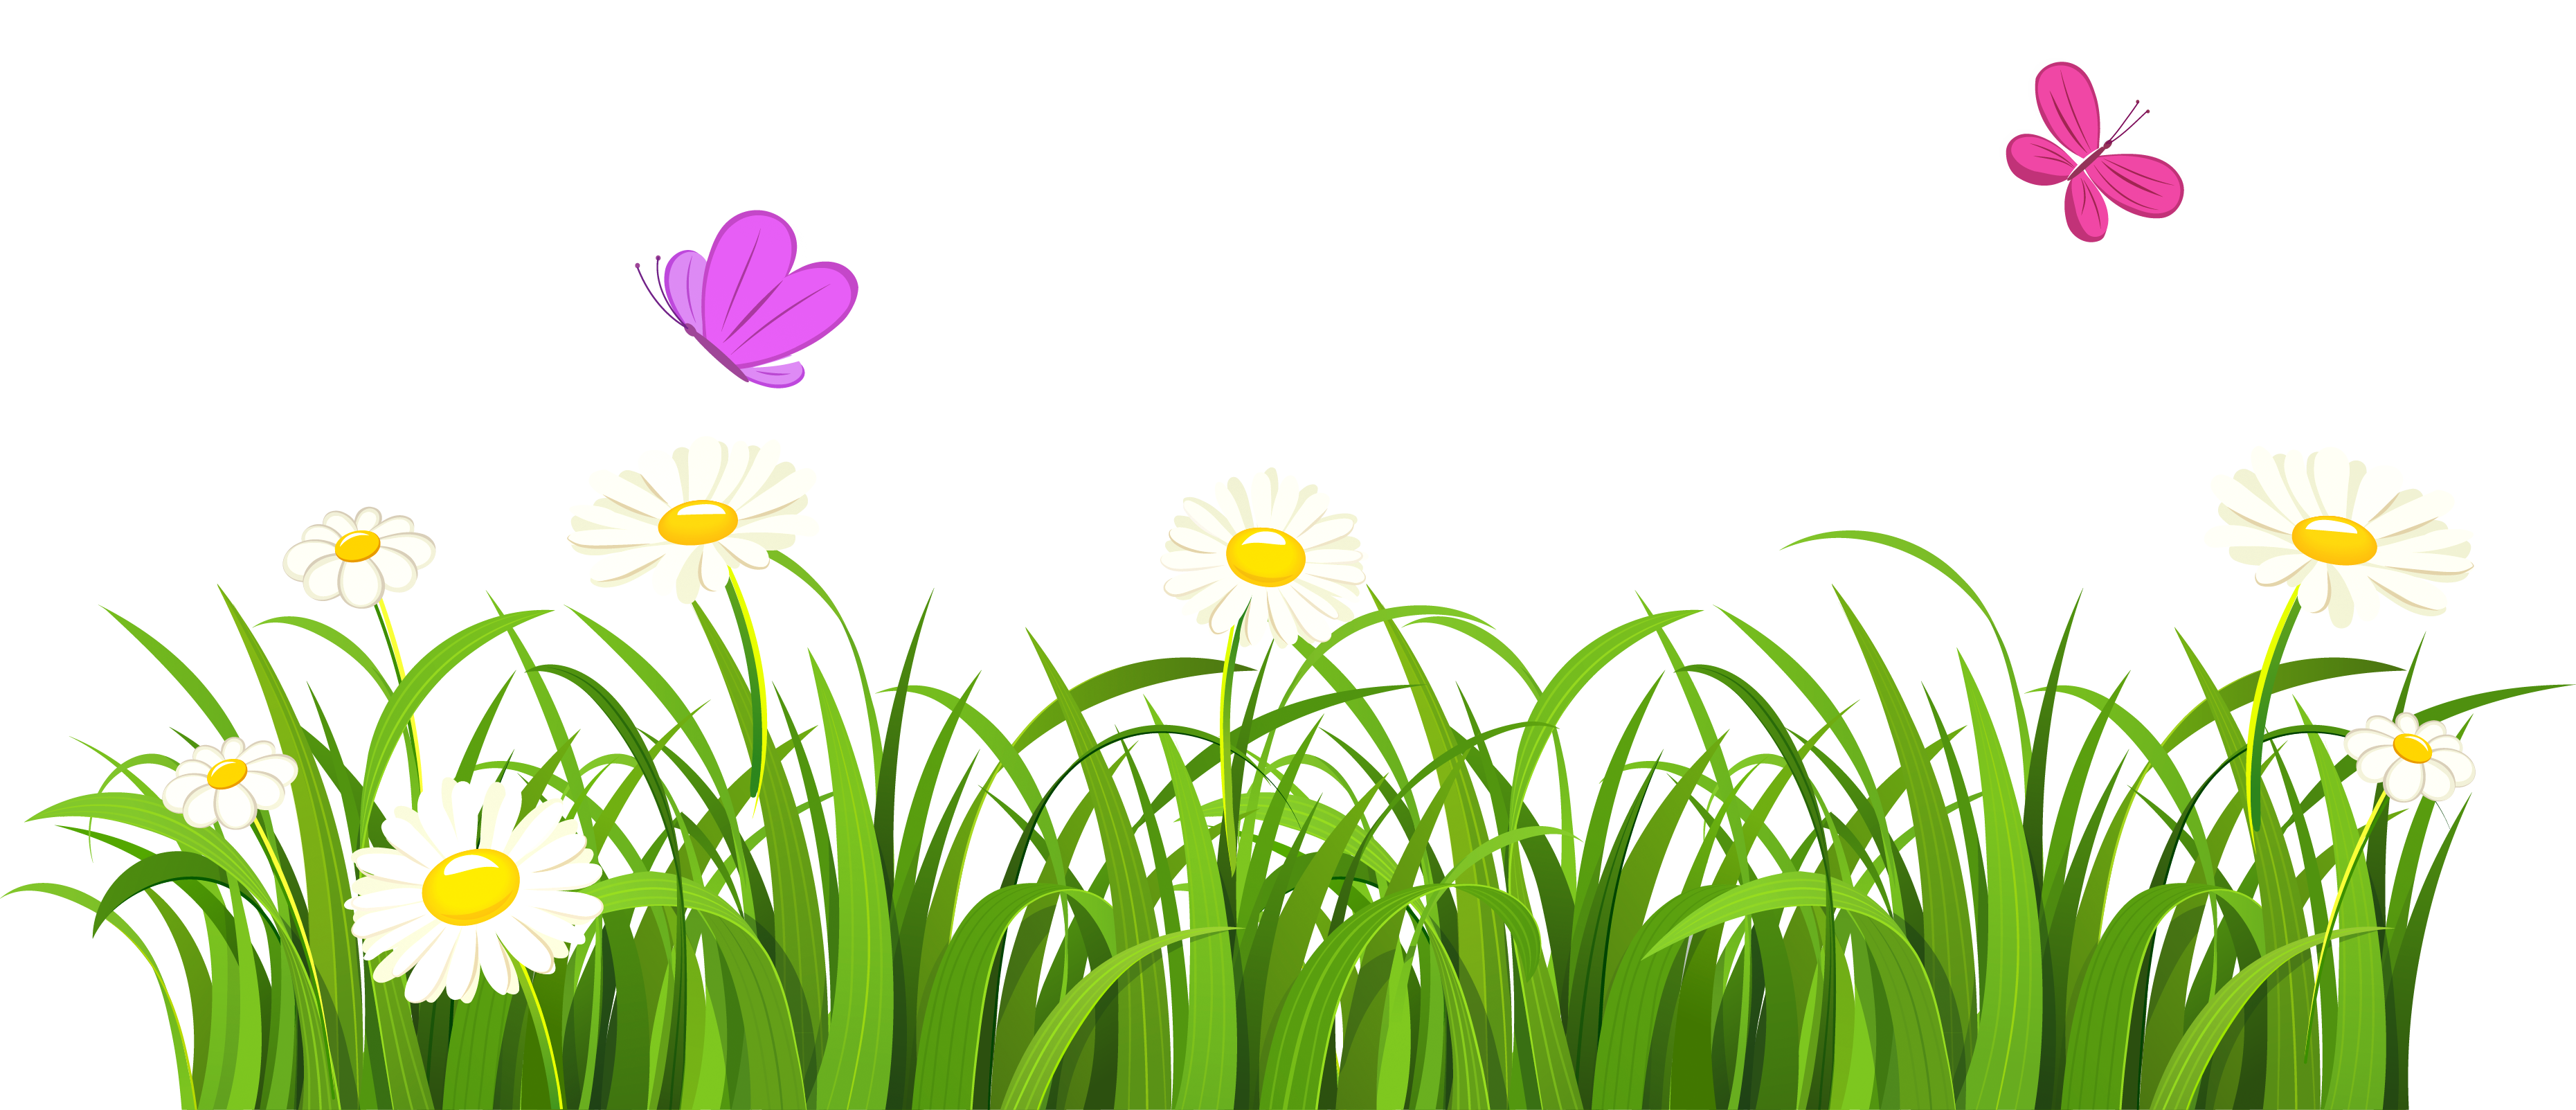 Garden vector png. Grass and butterflies clipart